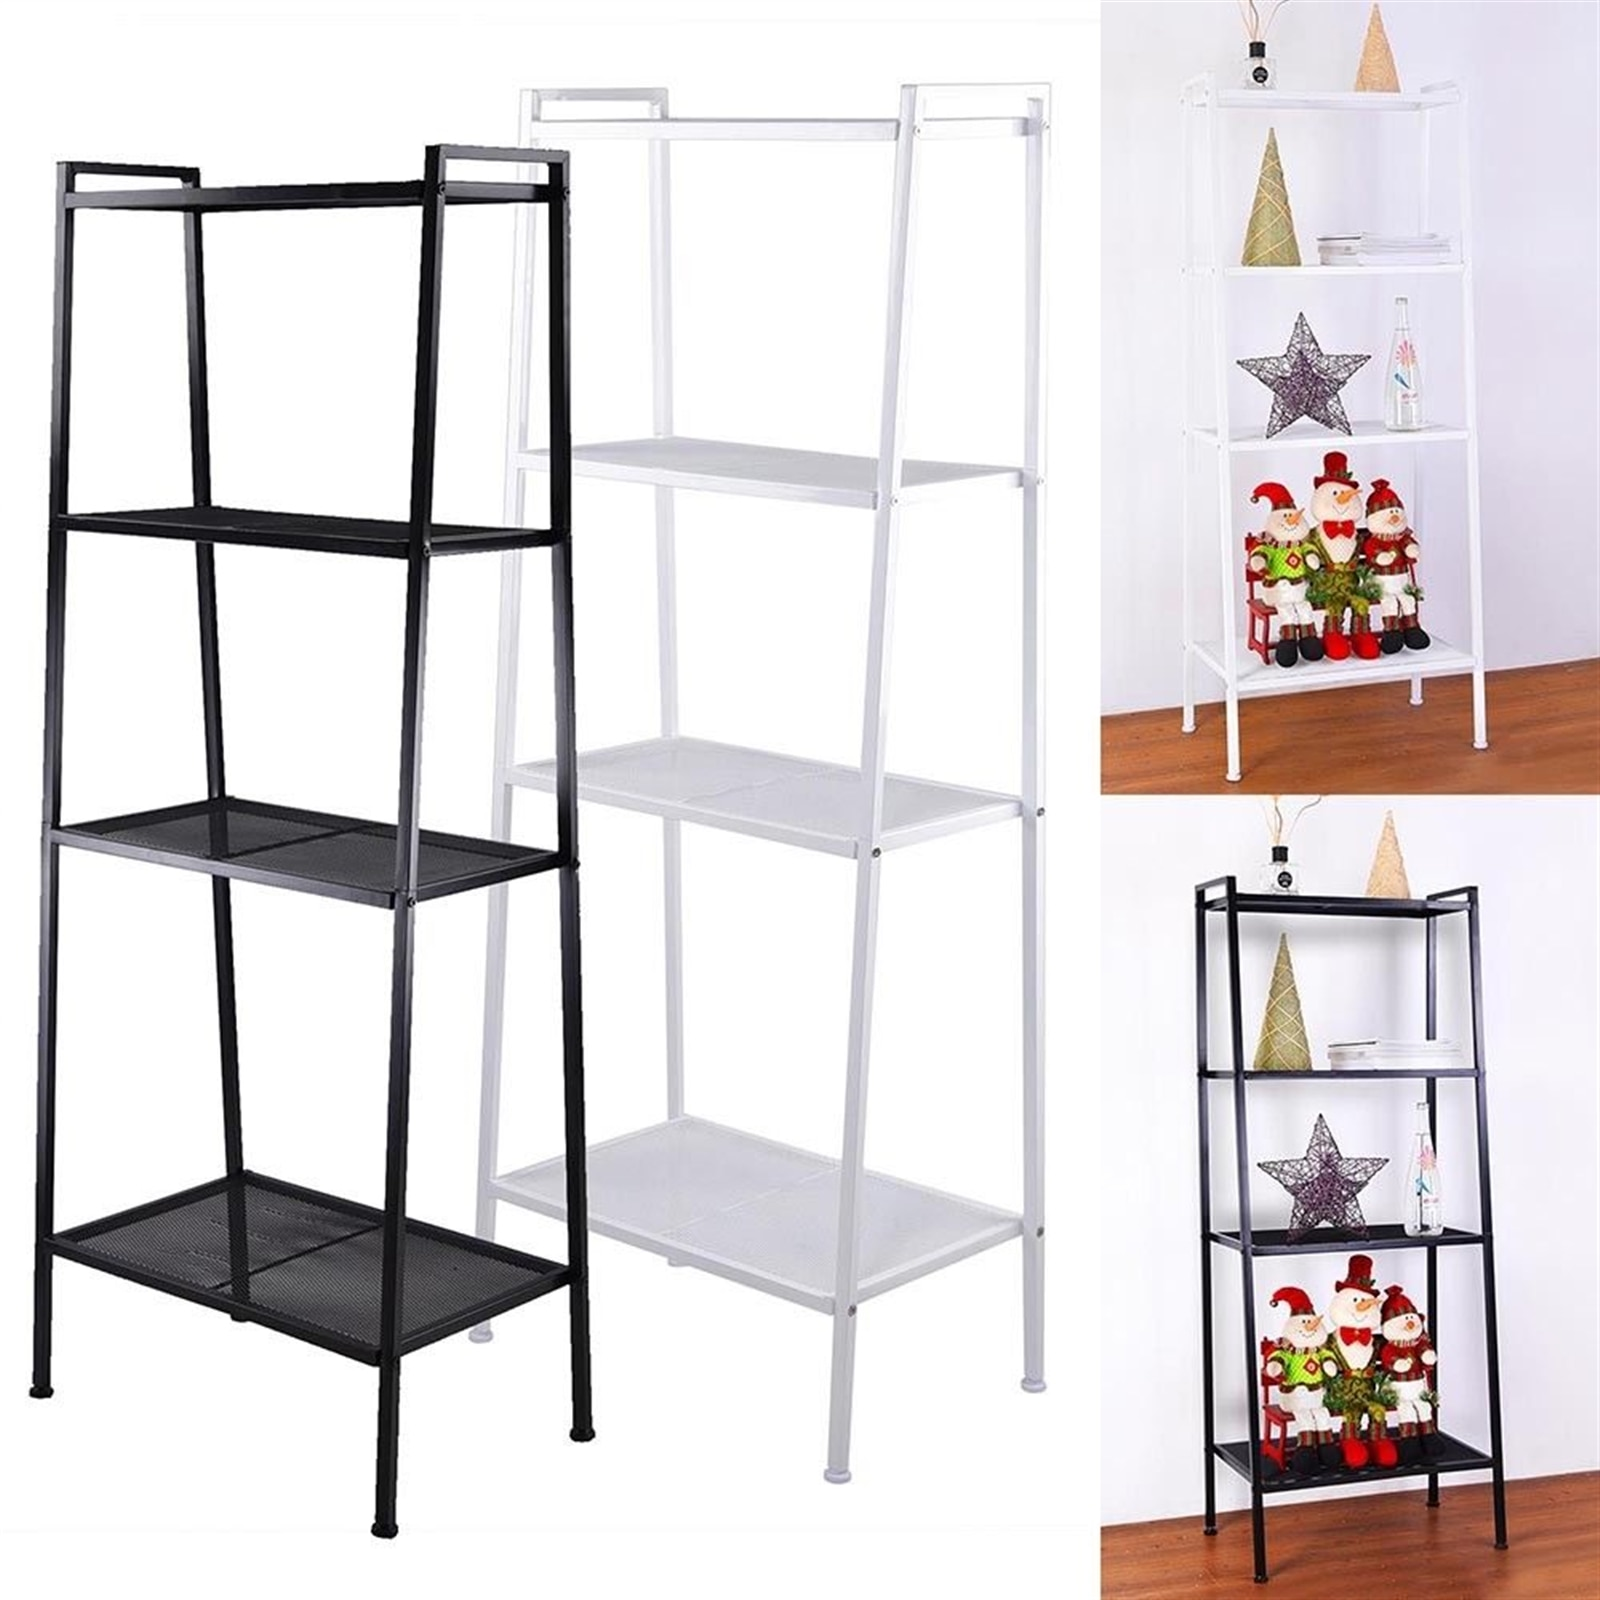 ladder bookcase black small langria 4 tier shelves ladder bookcase storage and display standing shelving unit 34 x30 cm x 148cm Bookshelf Bookcase 4-Tier Modern Ladder Shelf High Quality Iron Multipurpose Storage Rack Industrial Metal Easy Install